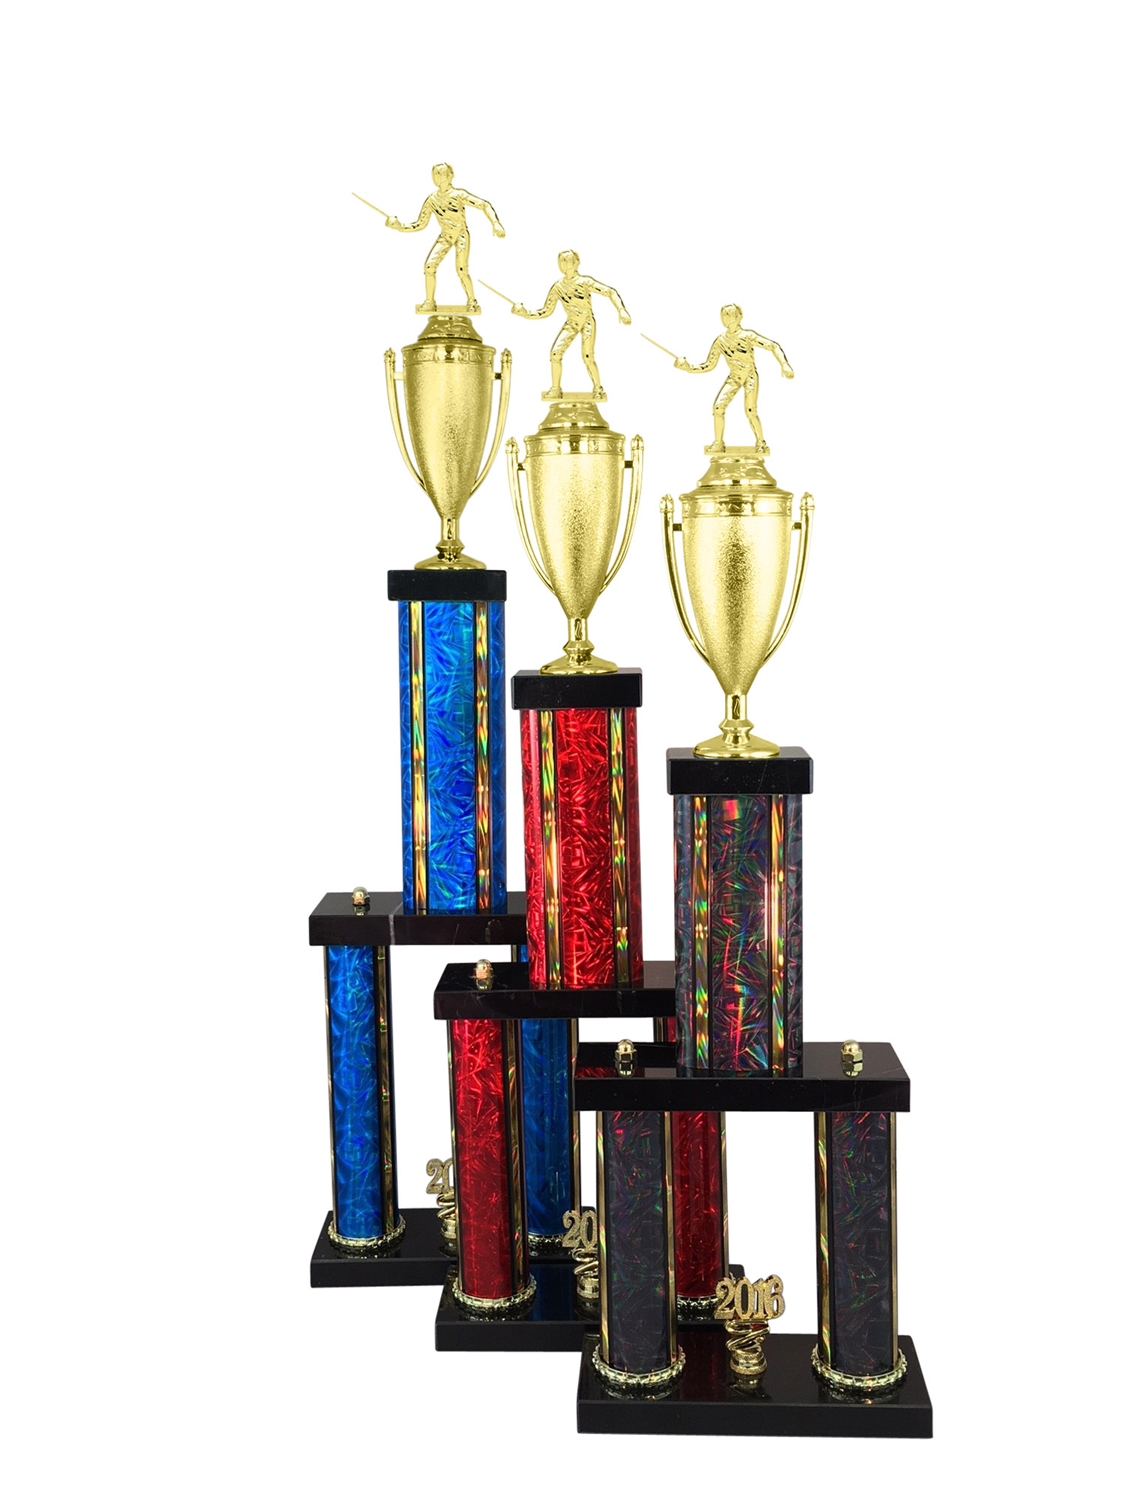 Fencing Trophy Available in 11 Color & 6 Size Options